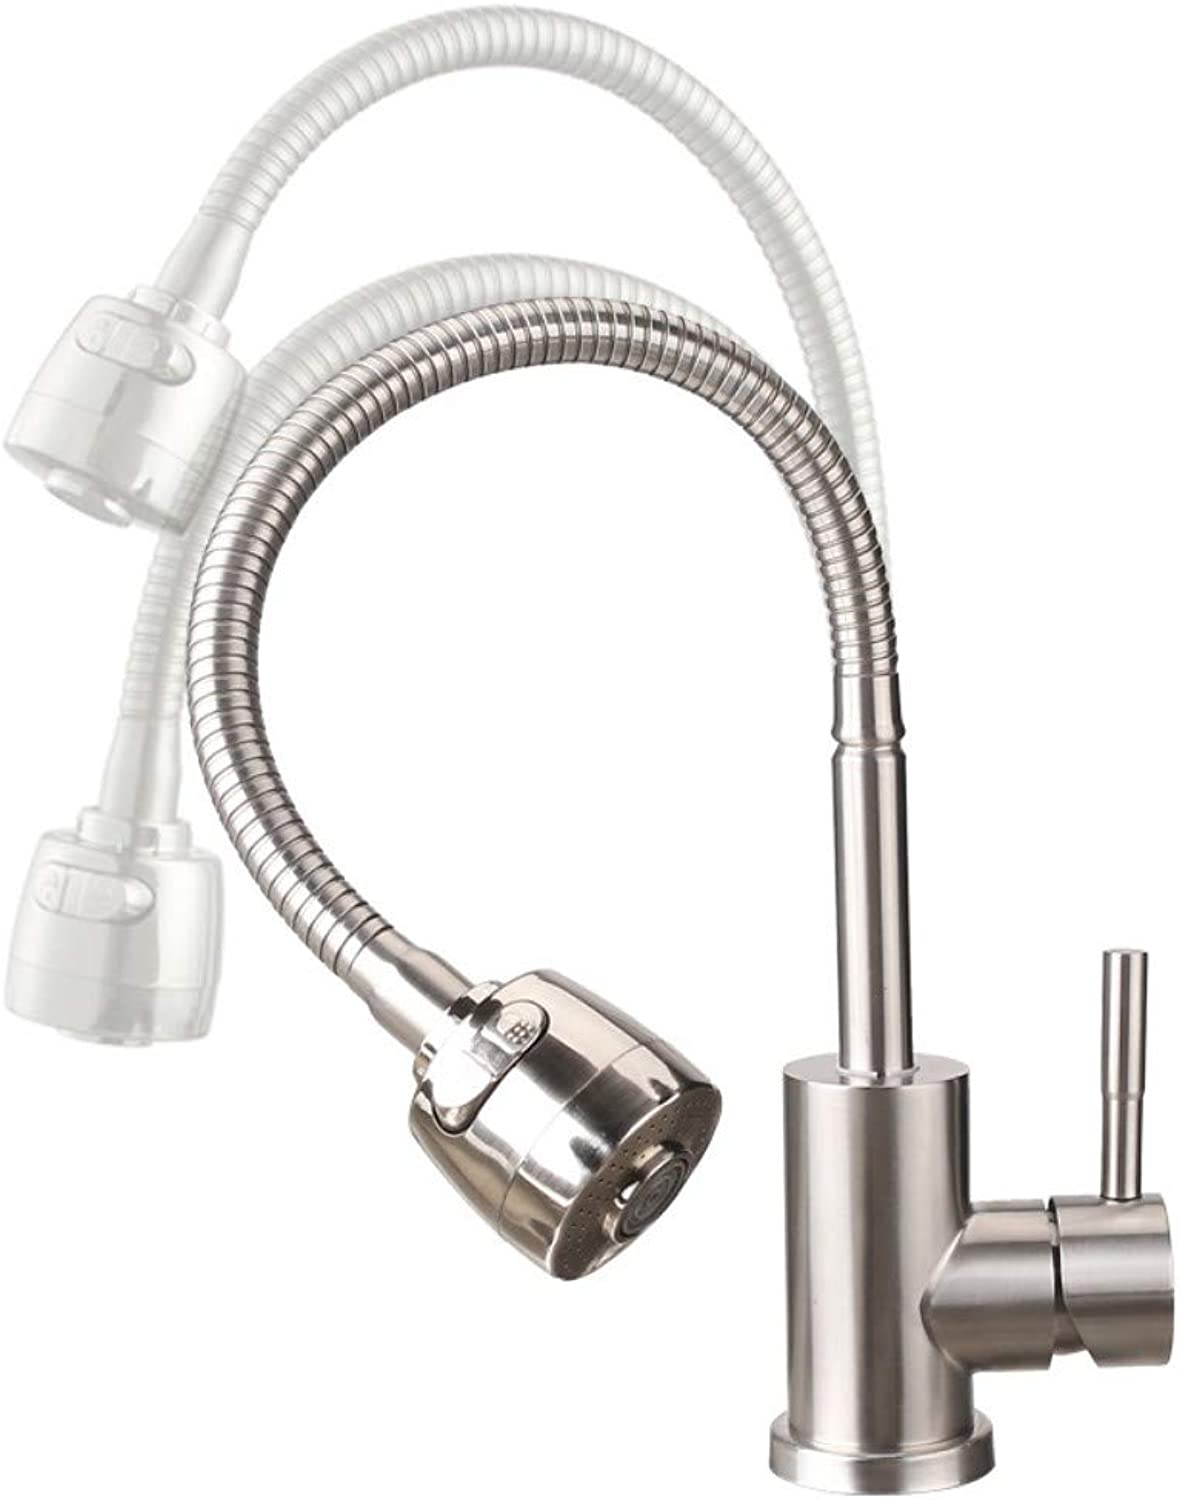 Stainless Steel Faucet Universal redating Hot and Cold Faucet Sink Faucet